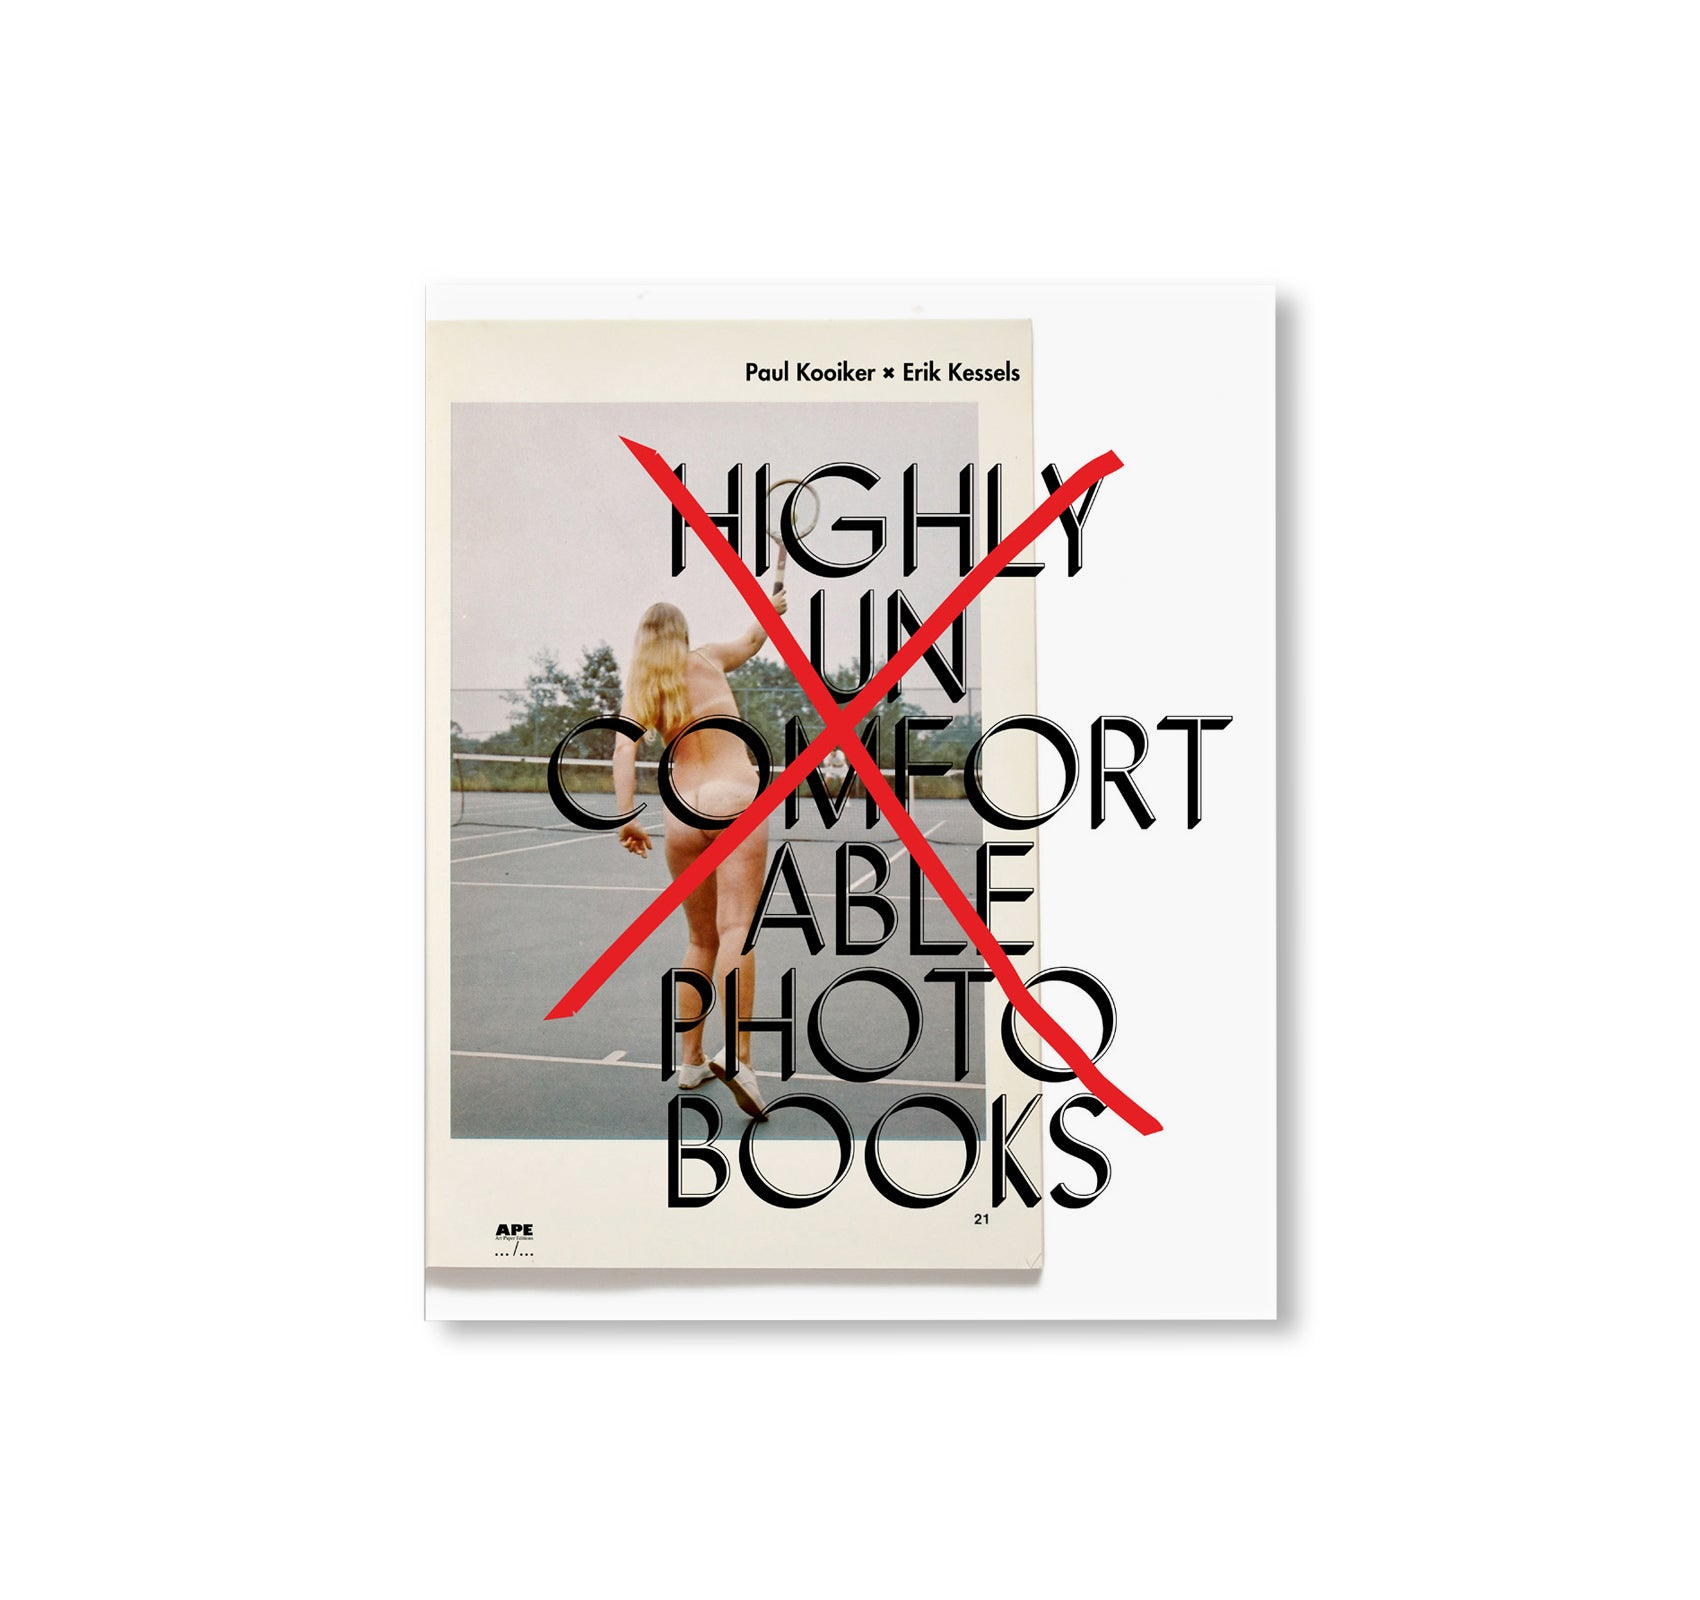 HIGHLY UNCOMFORTABLE PHOTO BOOKS by Erik Kessels, Paul Kooiker